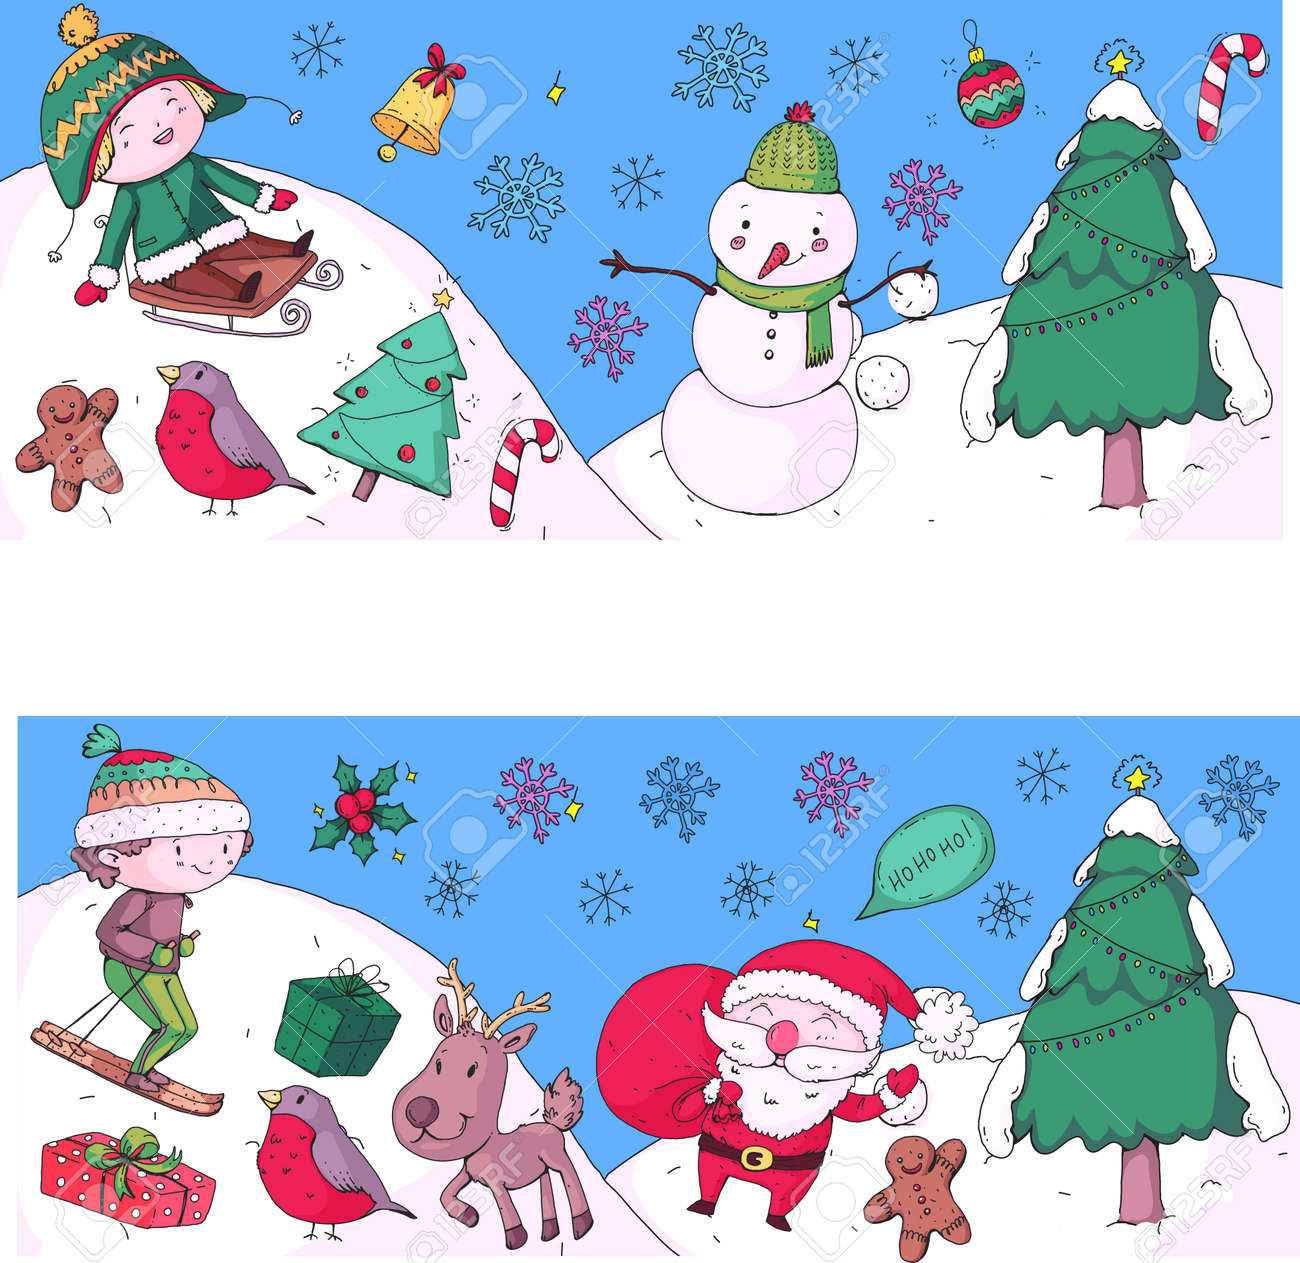 Christmas Drawing.Merry Christmas Celebration With Children Kids Drawing Illustration